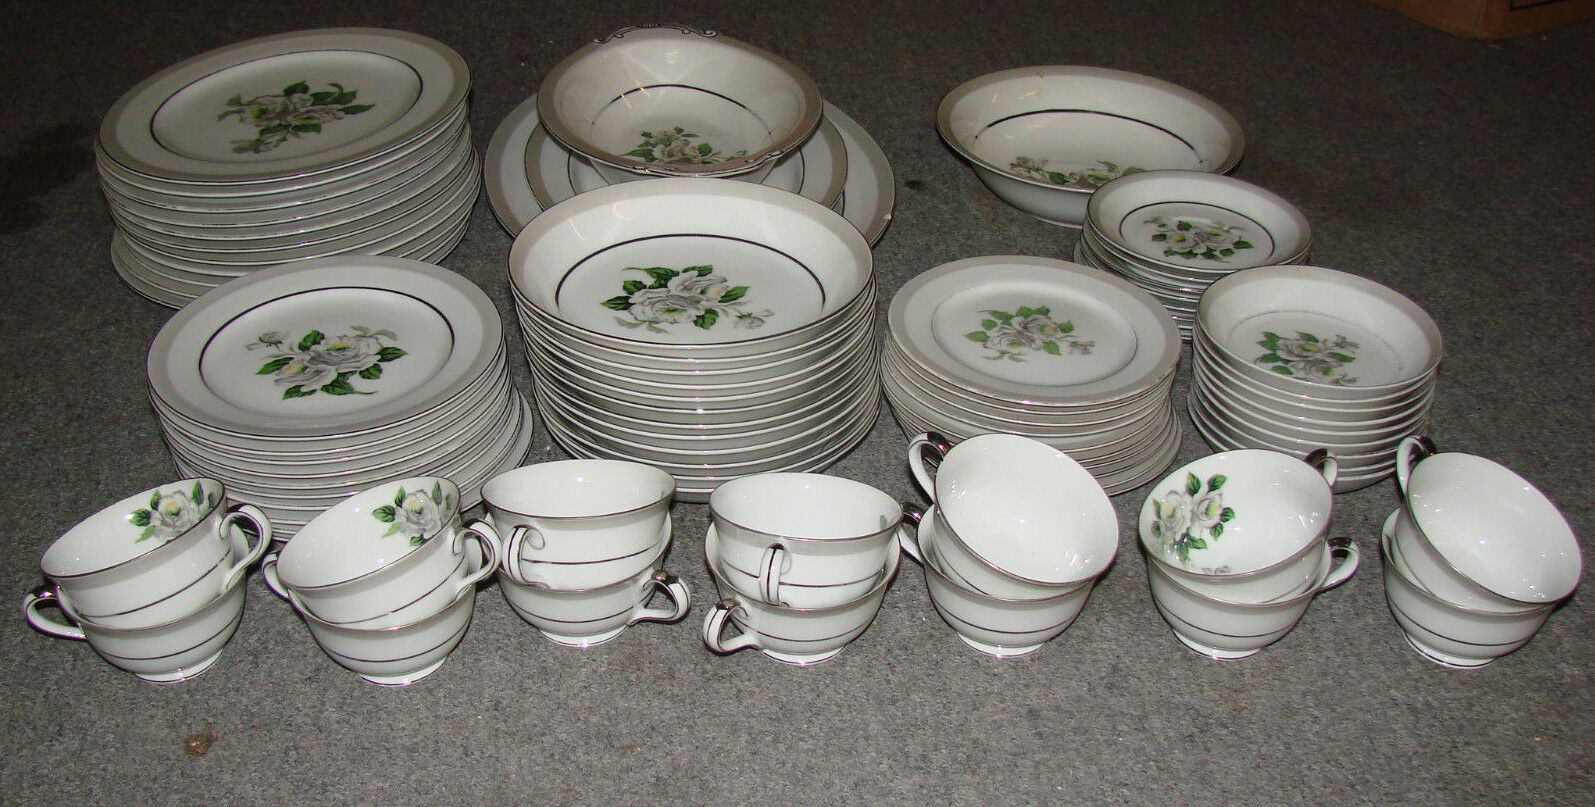 lot of 78 pieces white pattern 3939 china japan